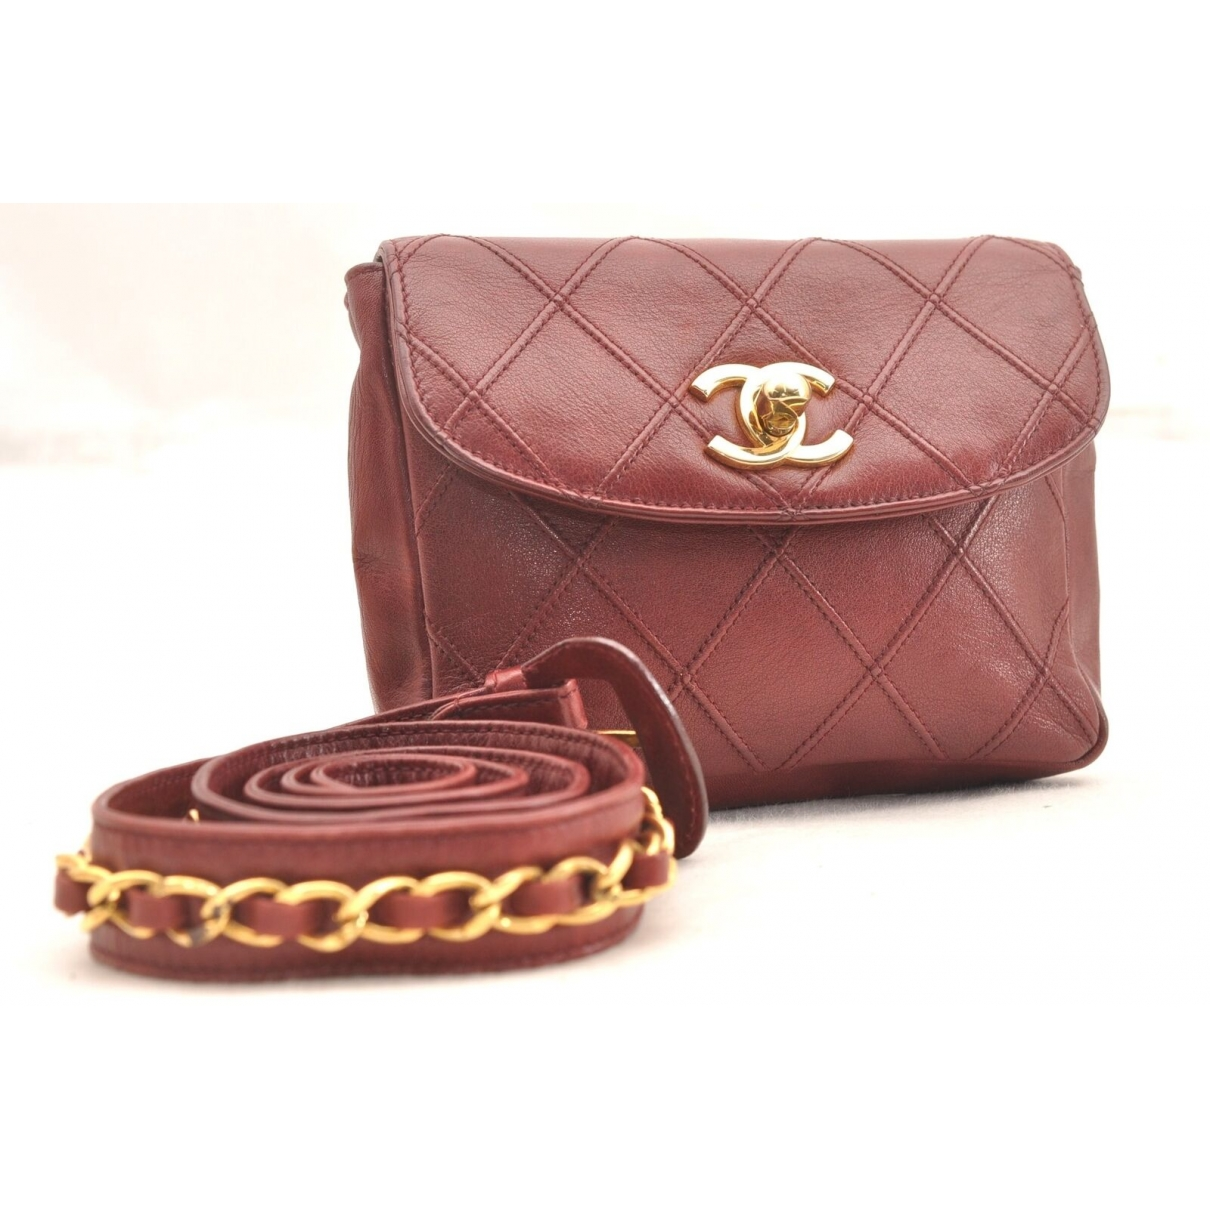 Chanel \N Burgundy Leather Clutch bag for Women \N